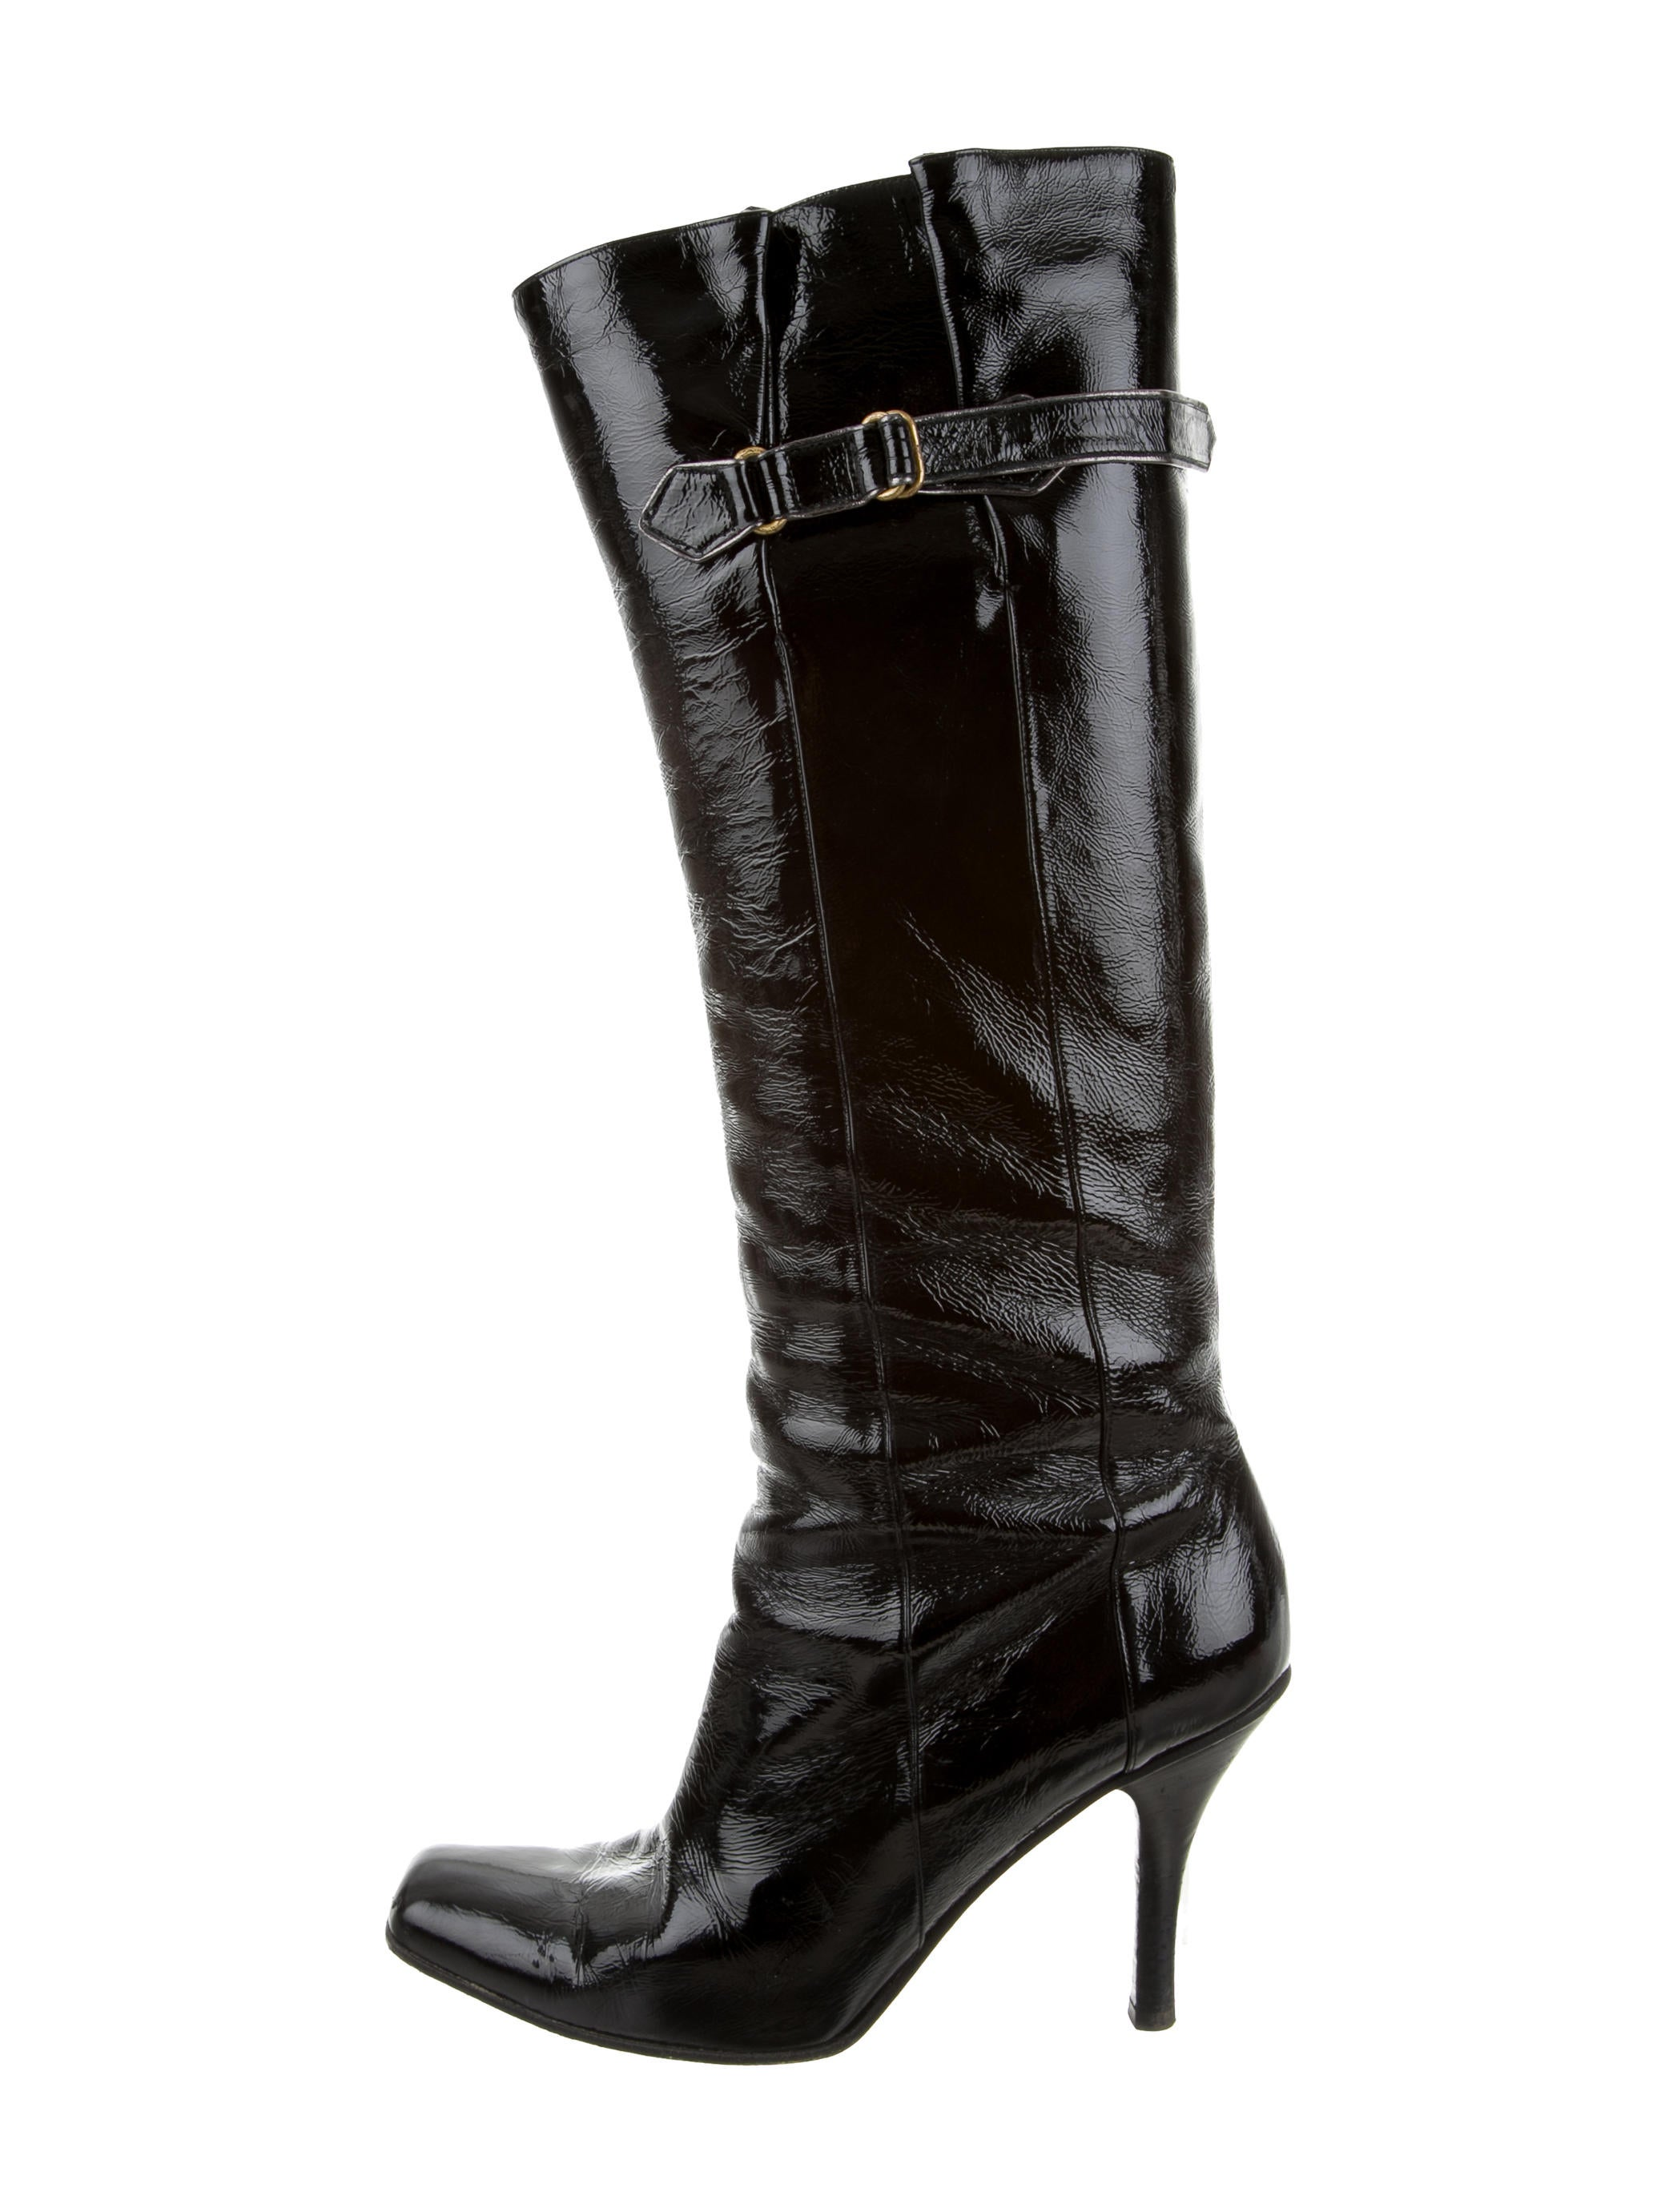 patent leather boots and Women Shoes items found. Sort By. items. View. Sort By. Filter. Your Selections. Shoes; Women; Like. PUMA. Puma x Fenty by Rihanna Cat Patent Leather Wedge Boot. $ MSRP: $ Like. Hunter. Original Patent Leather Lace-Up Shearling Lined Boot.